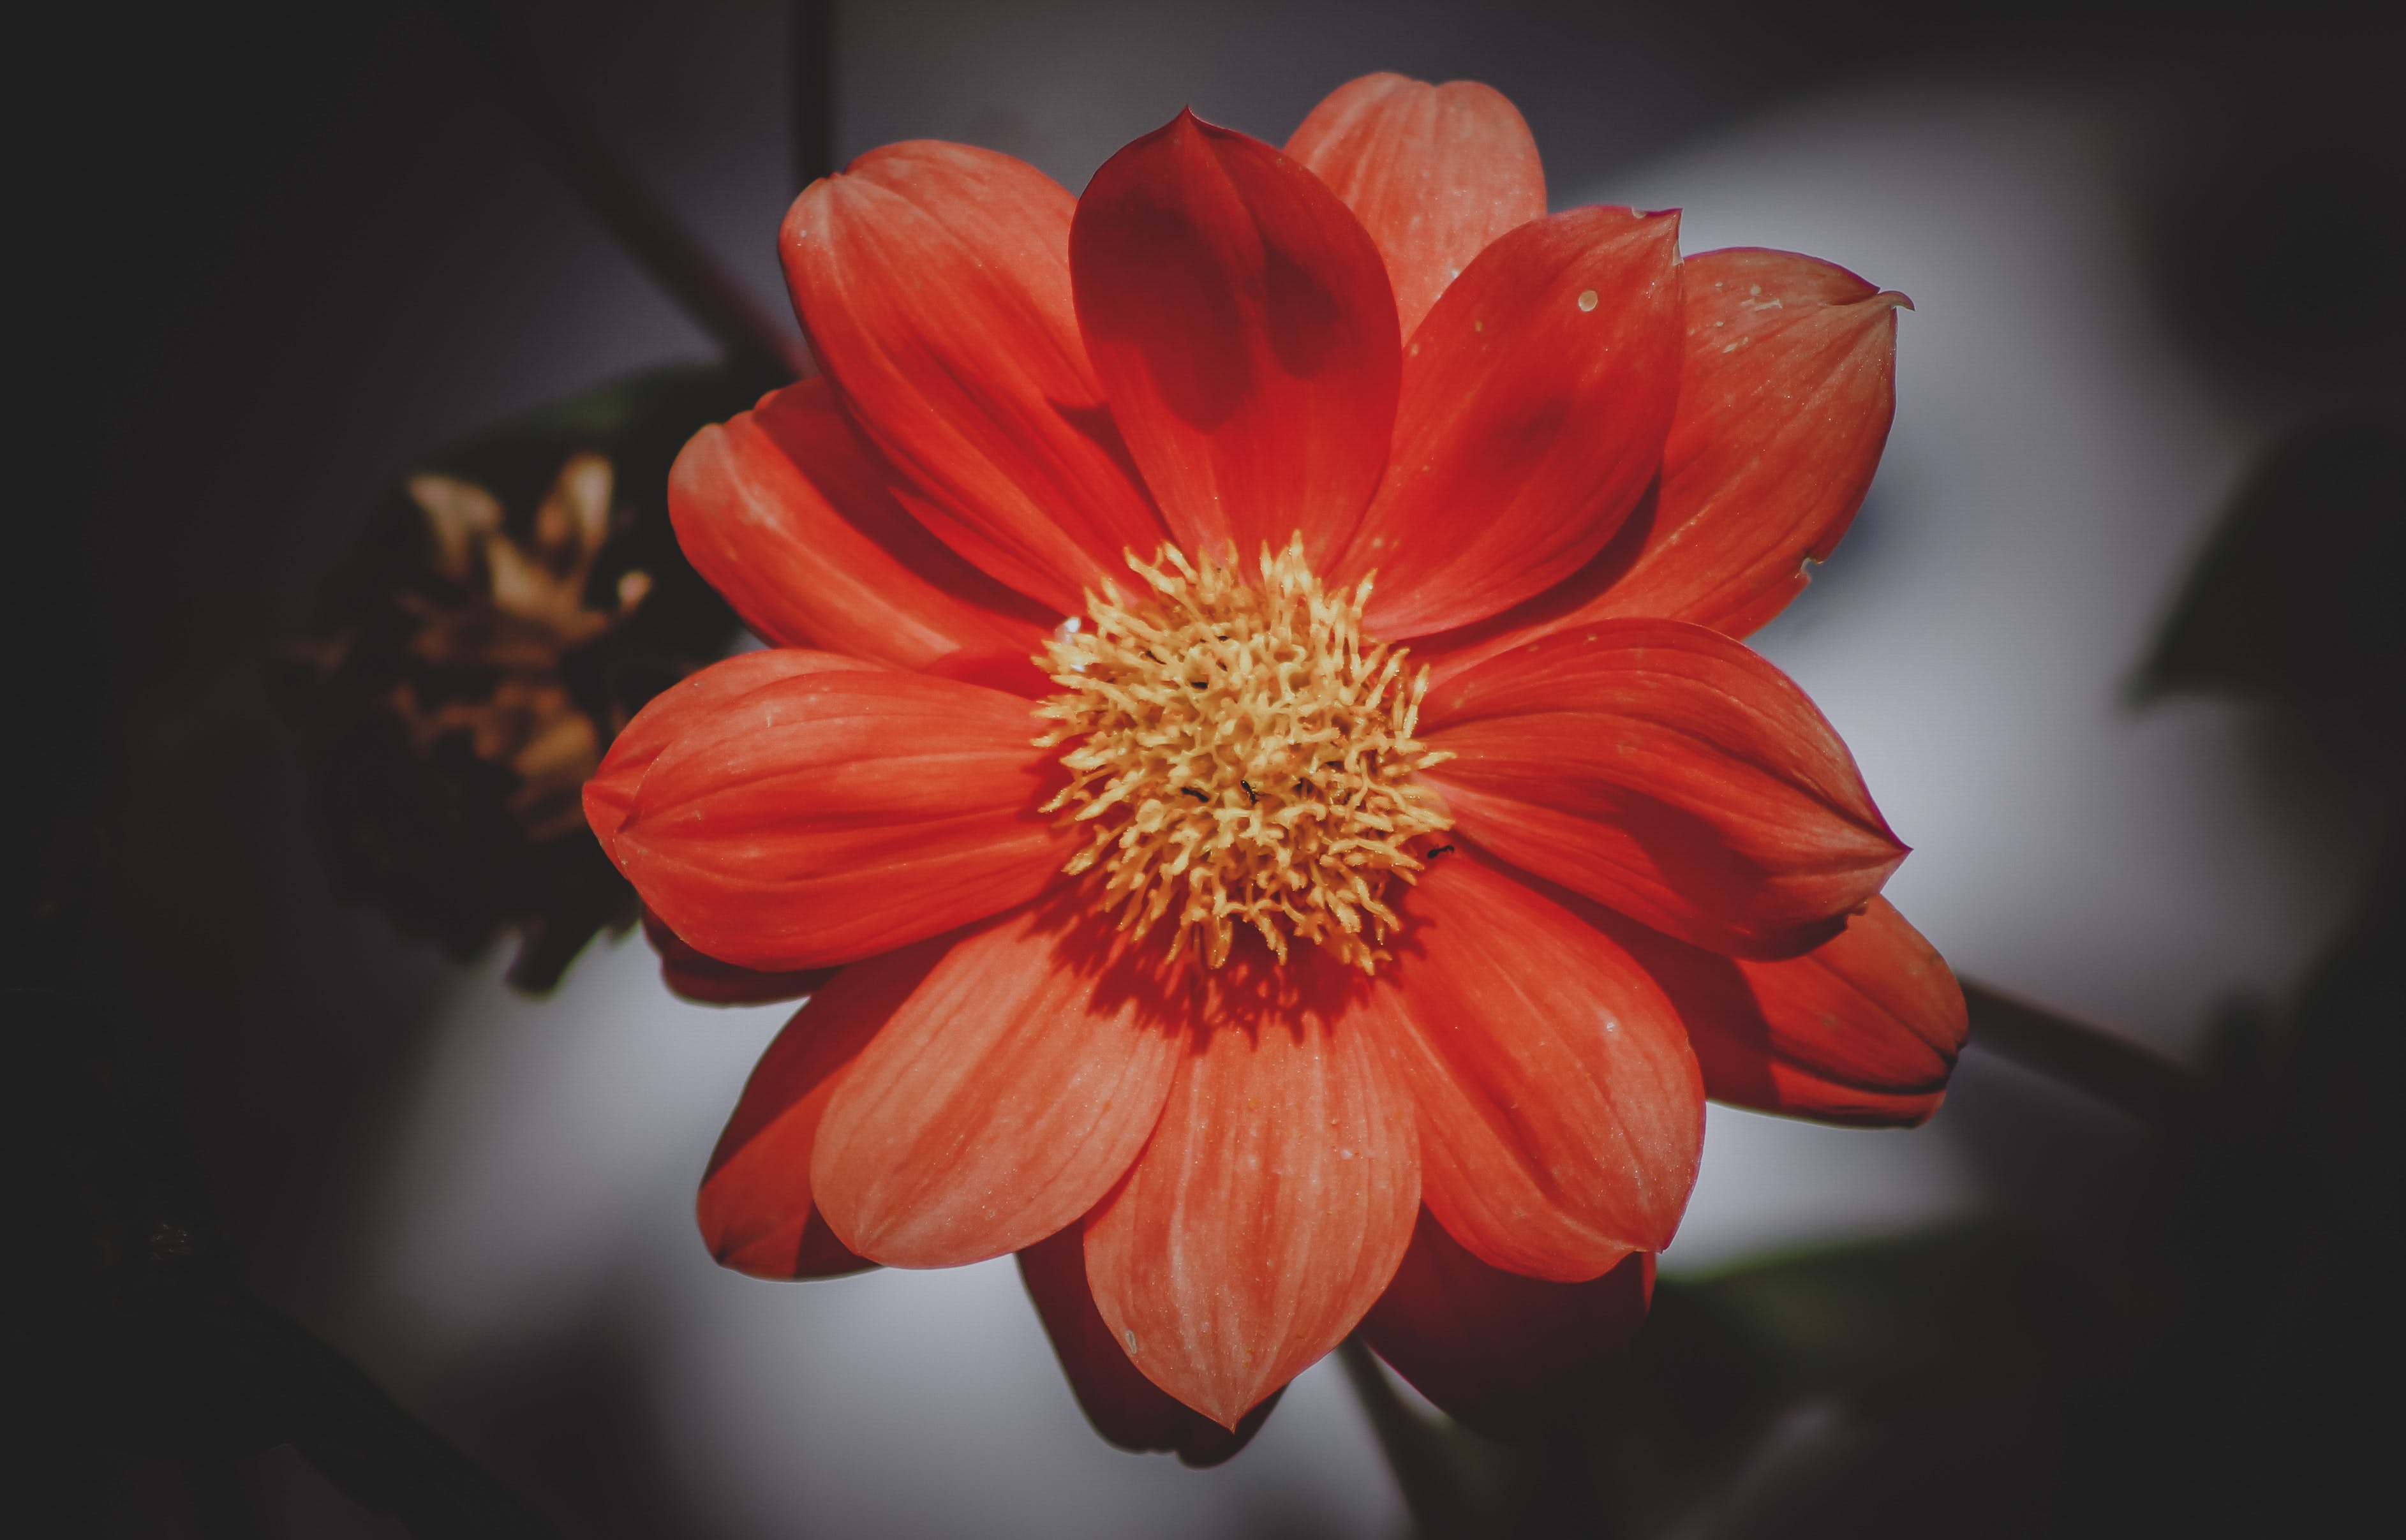 High Angle Photography of Red Daisy Flower